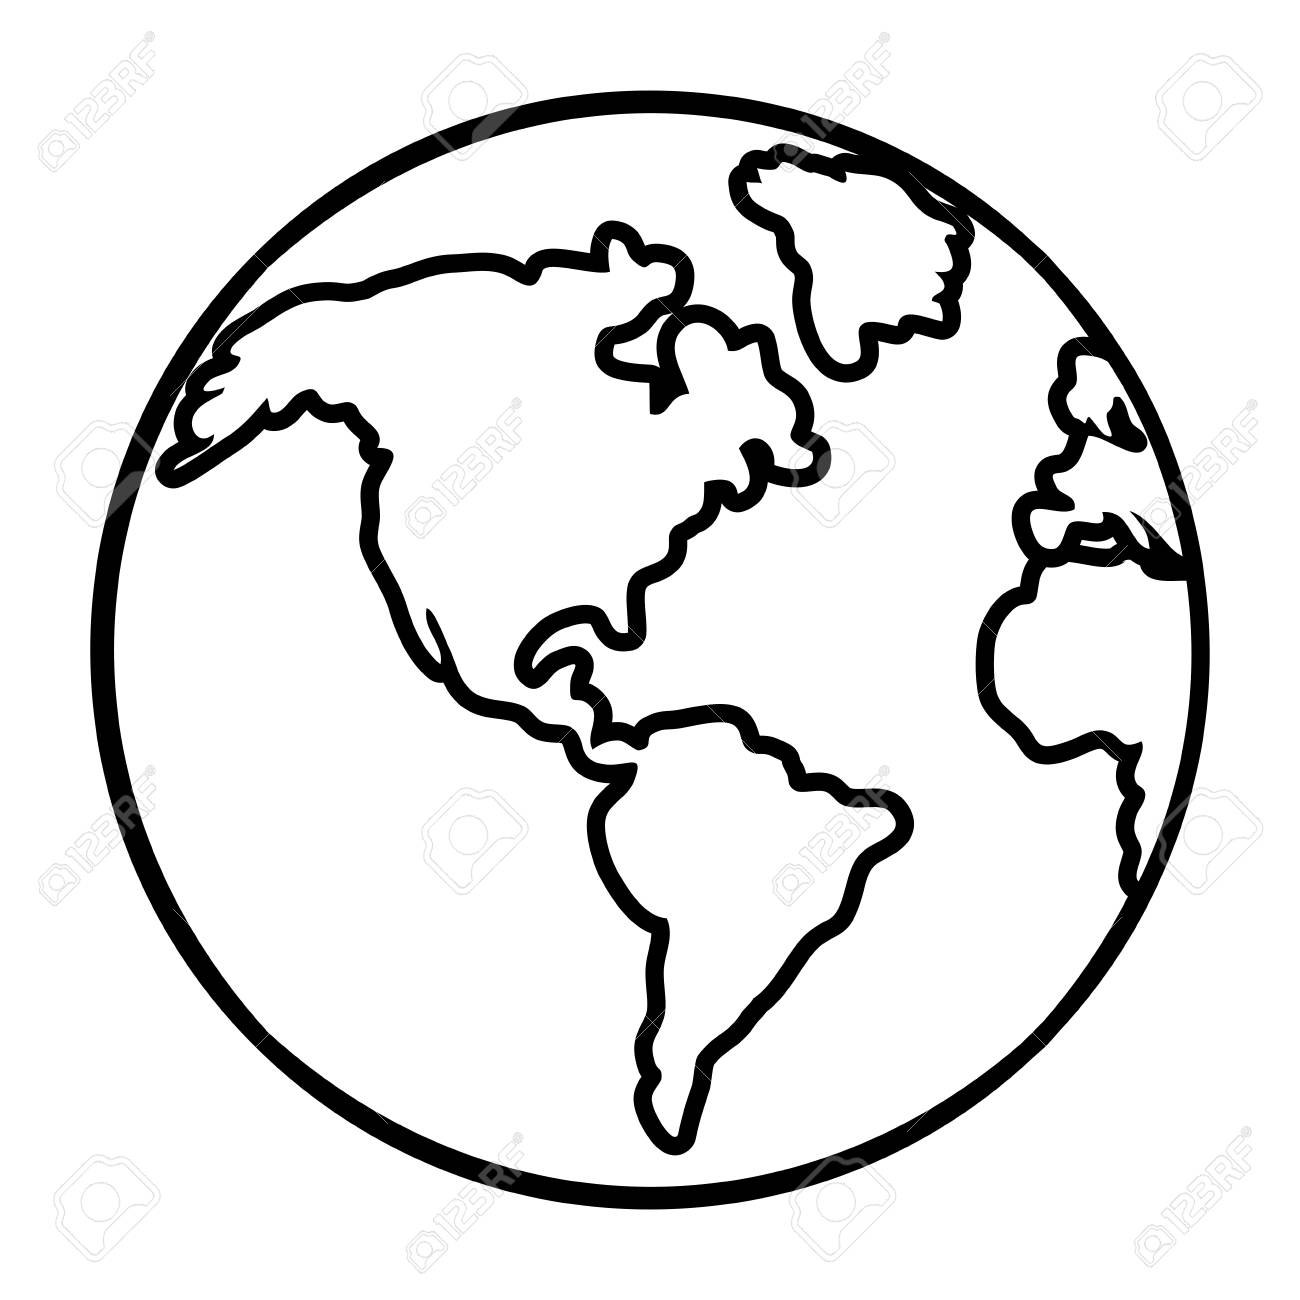 world map cartoon royalty free cliparts vectors and stock illustration image 120176957 world map cartoon